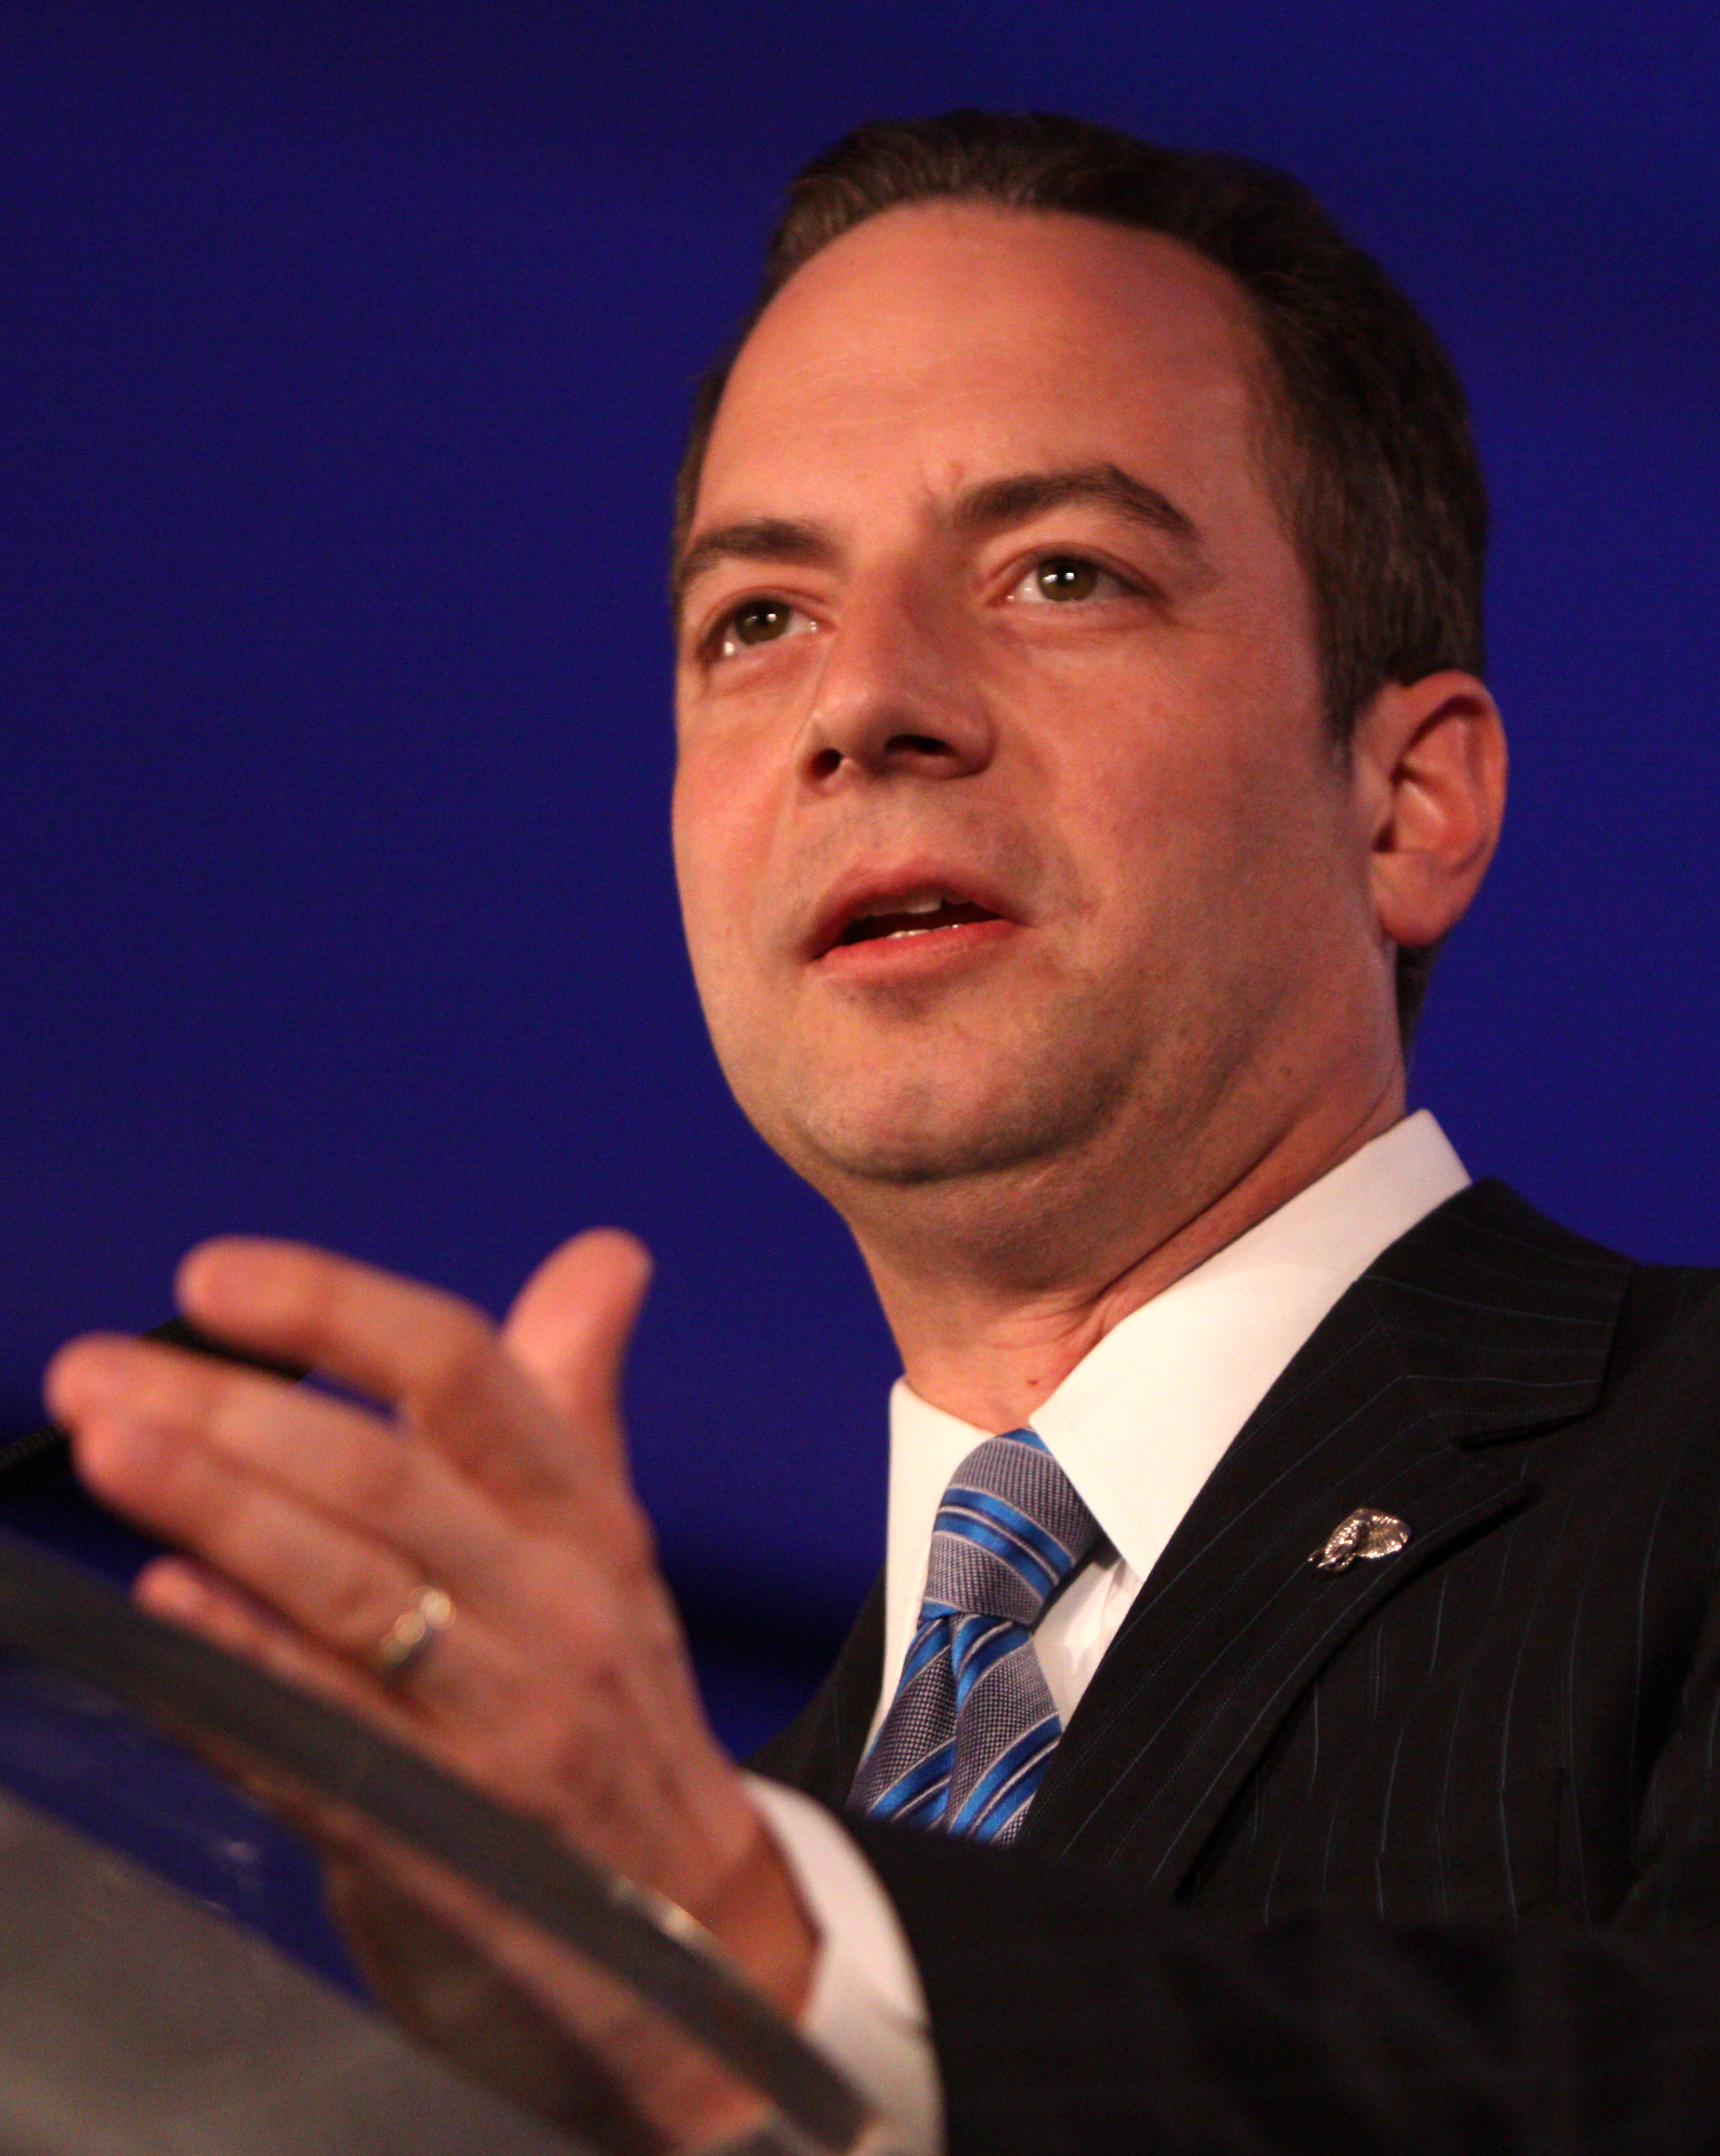 The 49-year old son of father Roula Priebus and mother Dimitra Priebus Reince Priebus in 2021 photo. Reince Priebus earned a  million dollar salary - leaving the net worth at 2 million in 2021